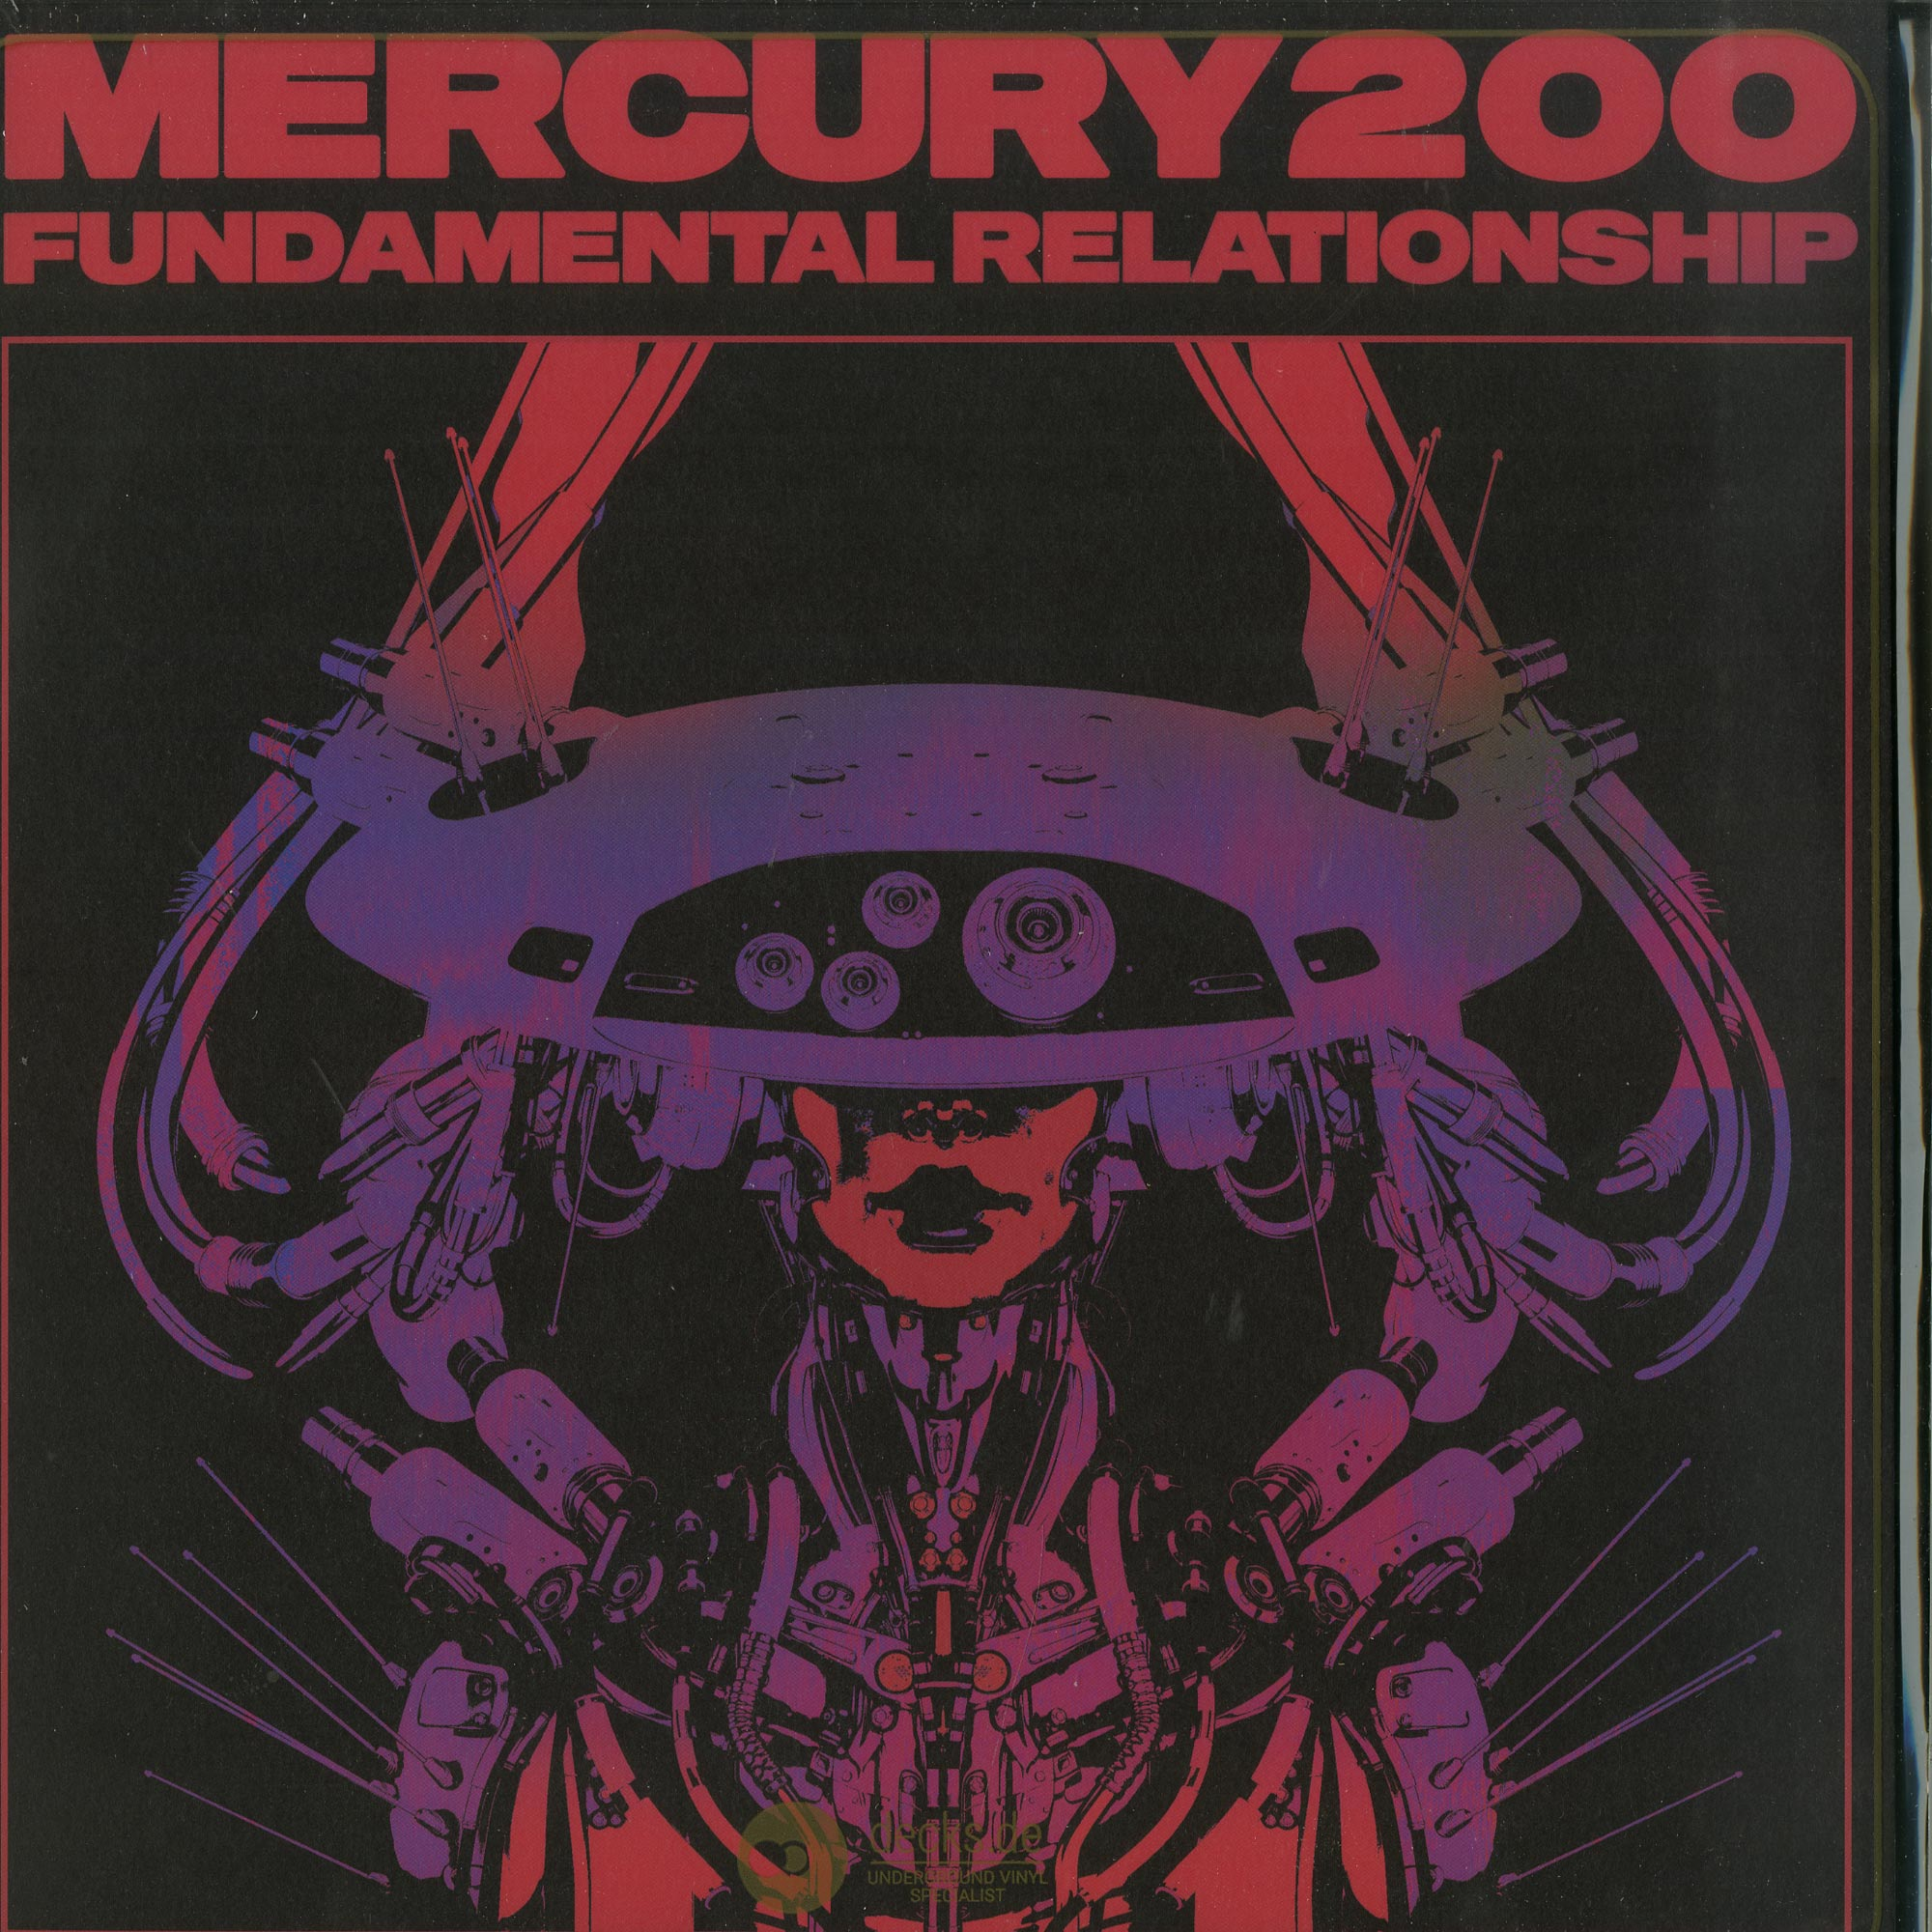 Mercury 200 - FUNDAMENTAL RELATIONSHIP